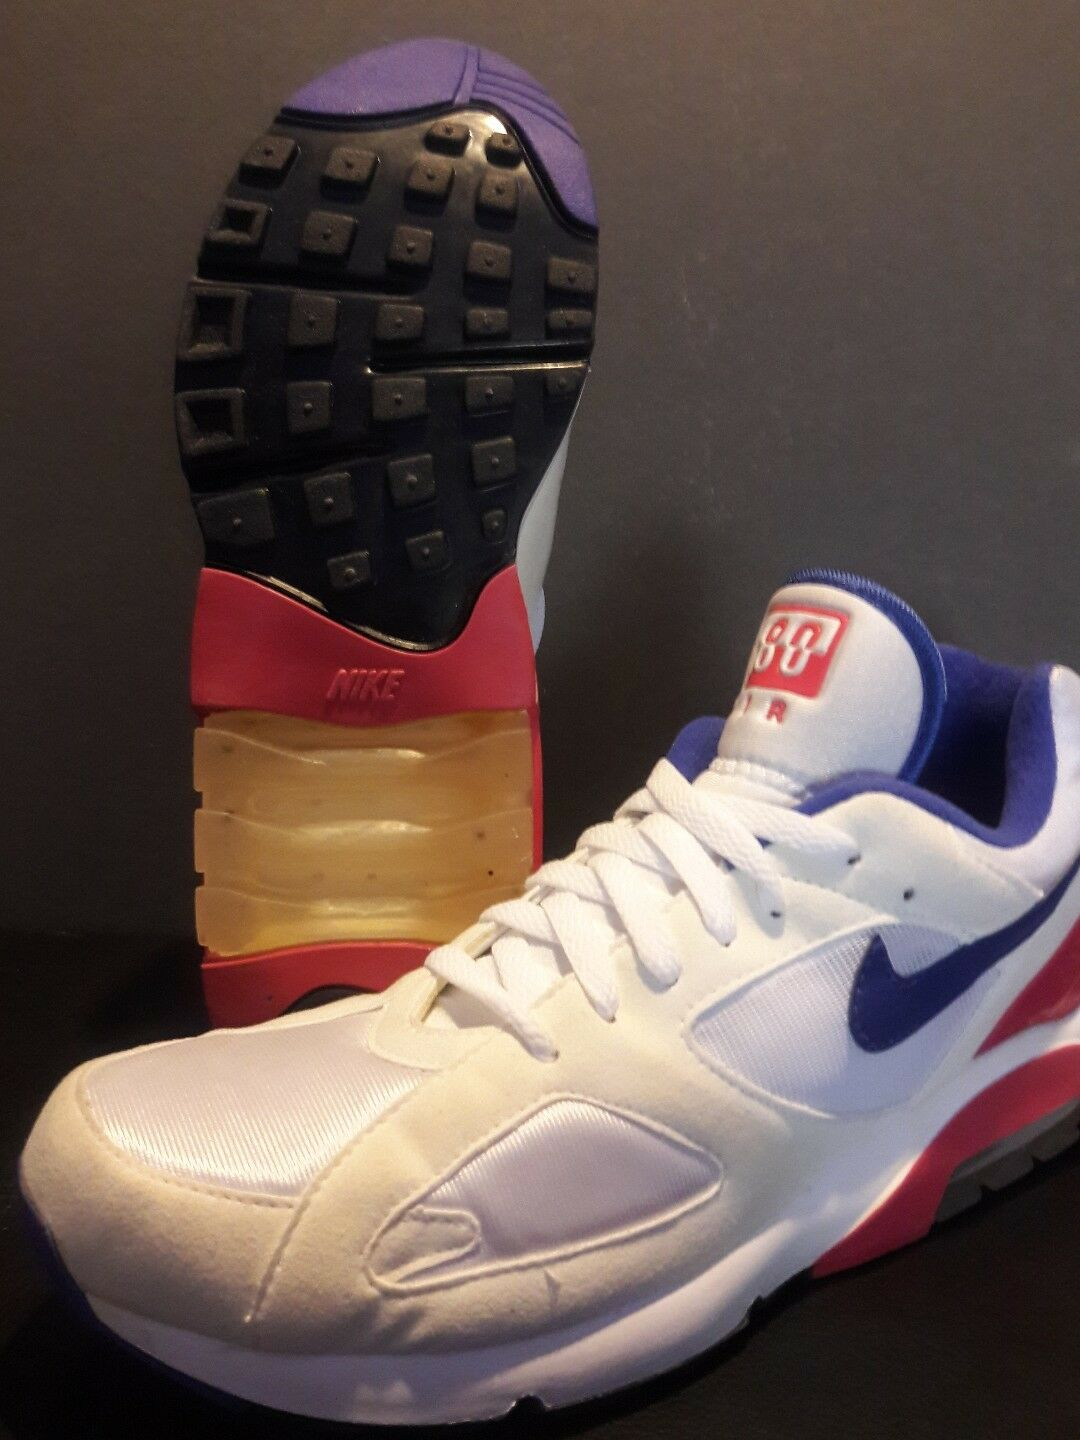 Nike Air Max 180 OG Ultramarine sz 11.5